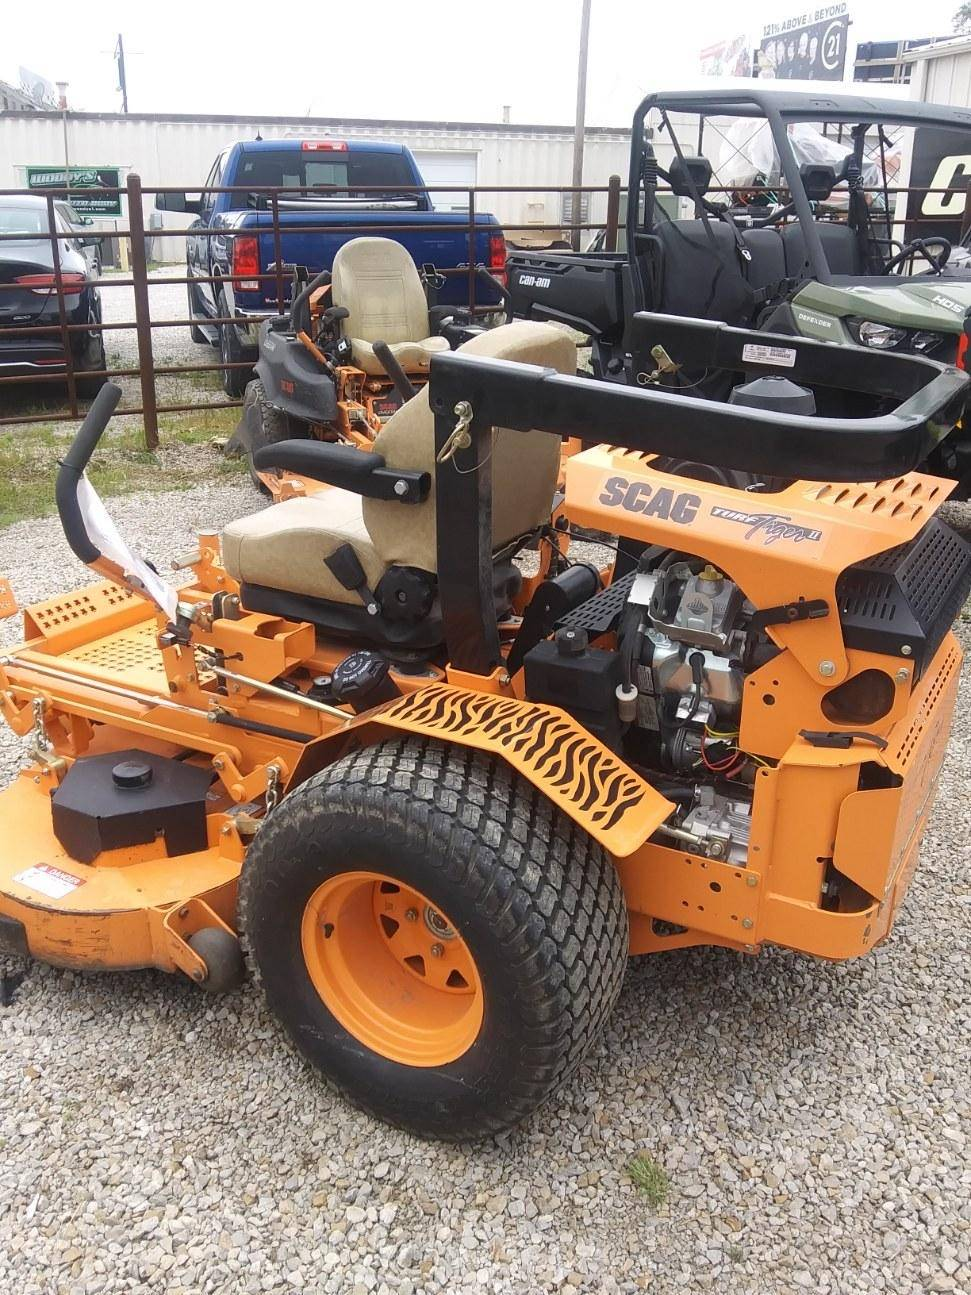 2018 SCAG Power Equipment Turf Tiger II 61 in. Briggs-Vanguard 31 hp in Chillicothe, Missouri - Photo 3